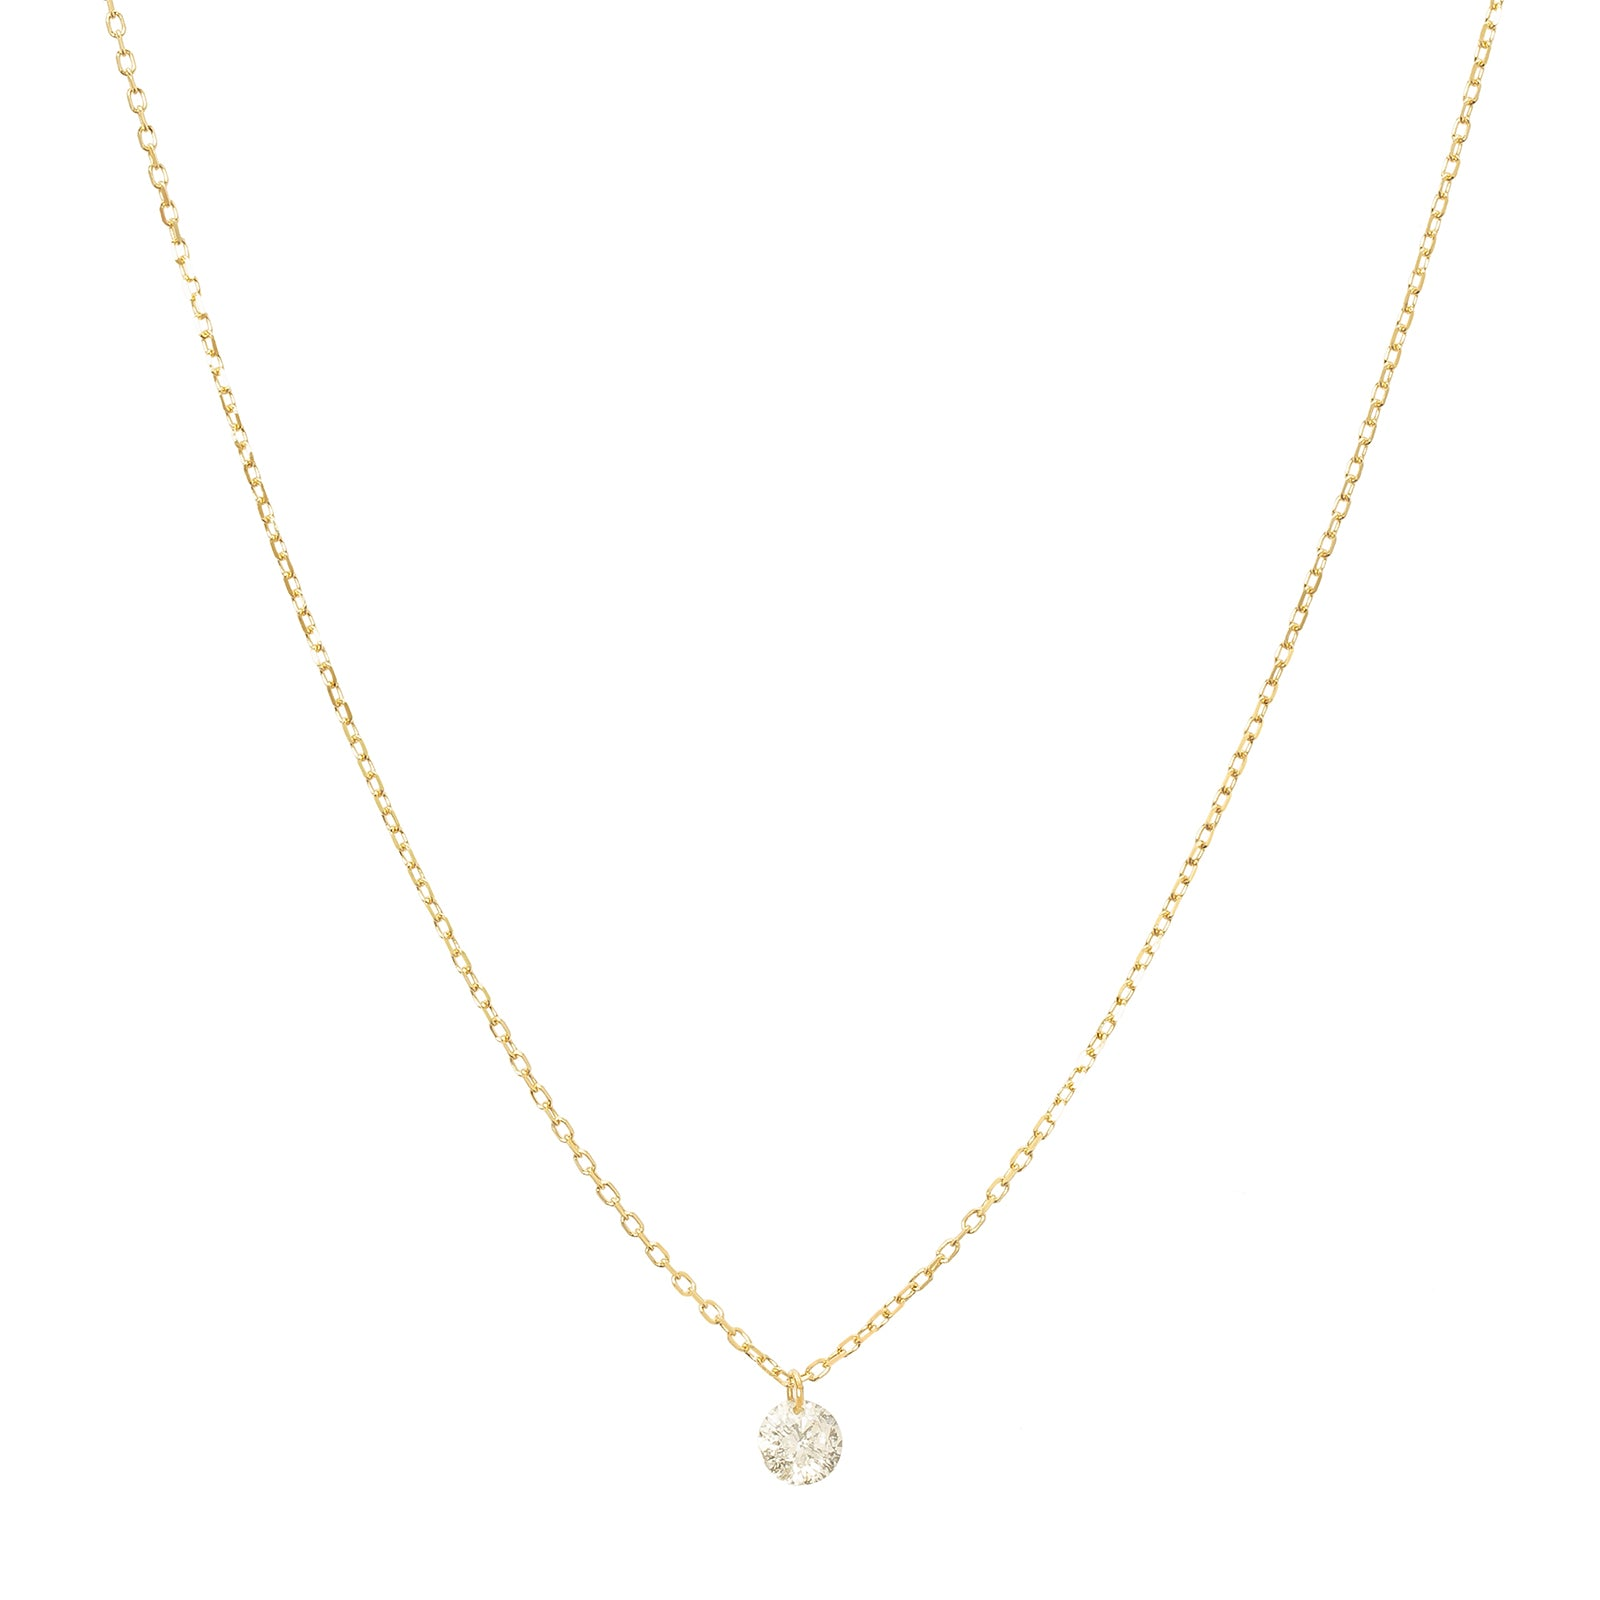 Persée Paris Danaé Diamond Necklace - Yellow Gold - Necklaces - Broken English Jewelry